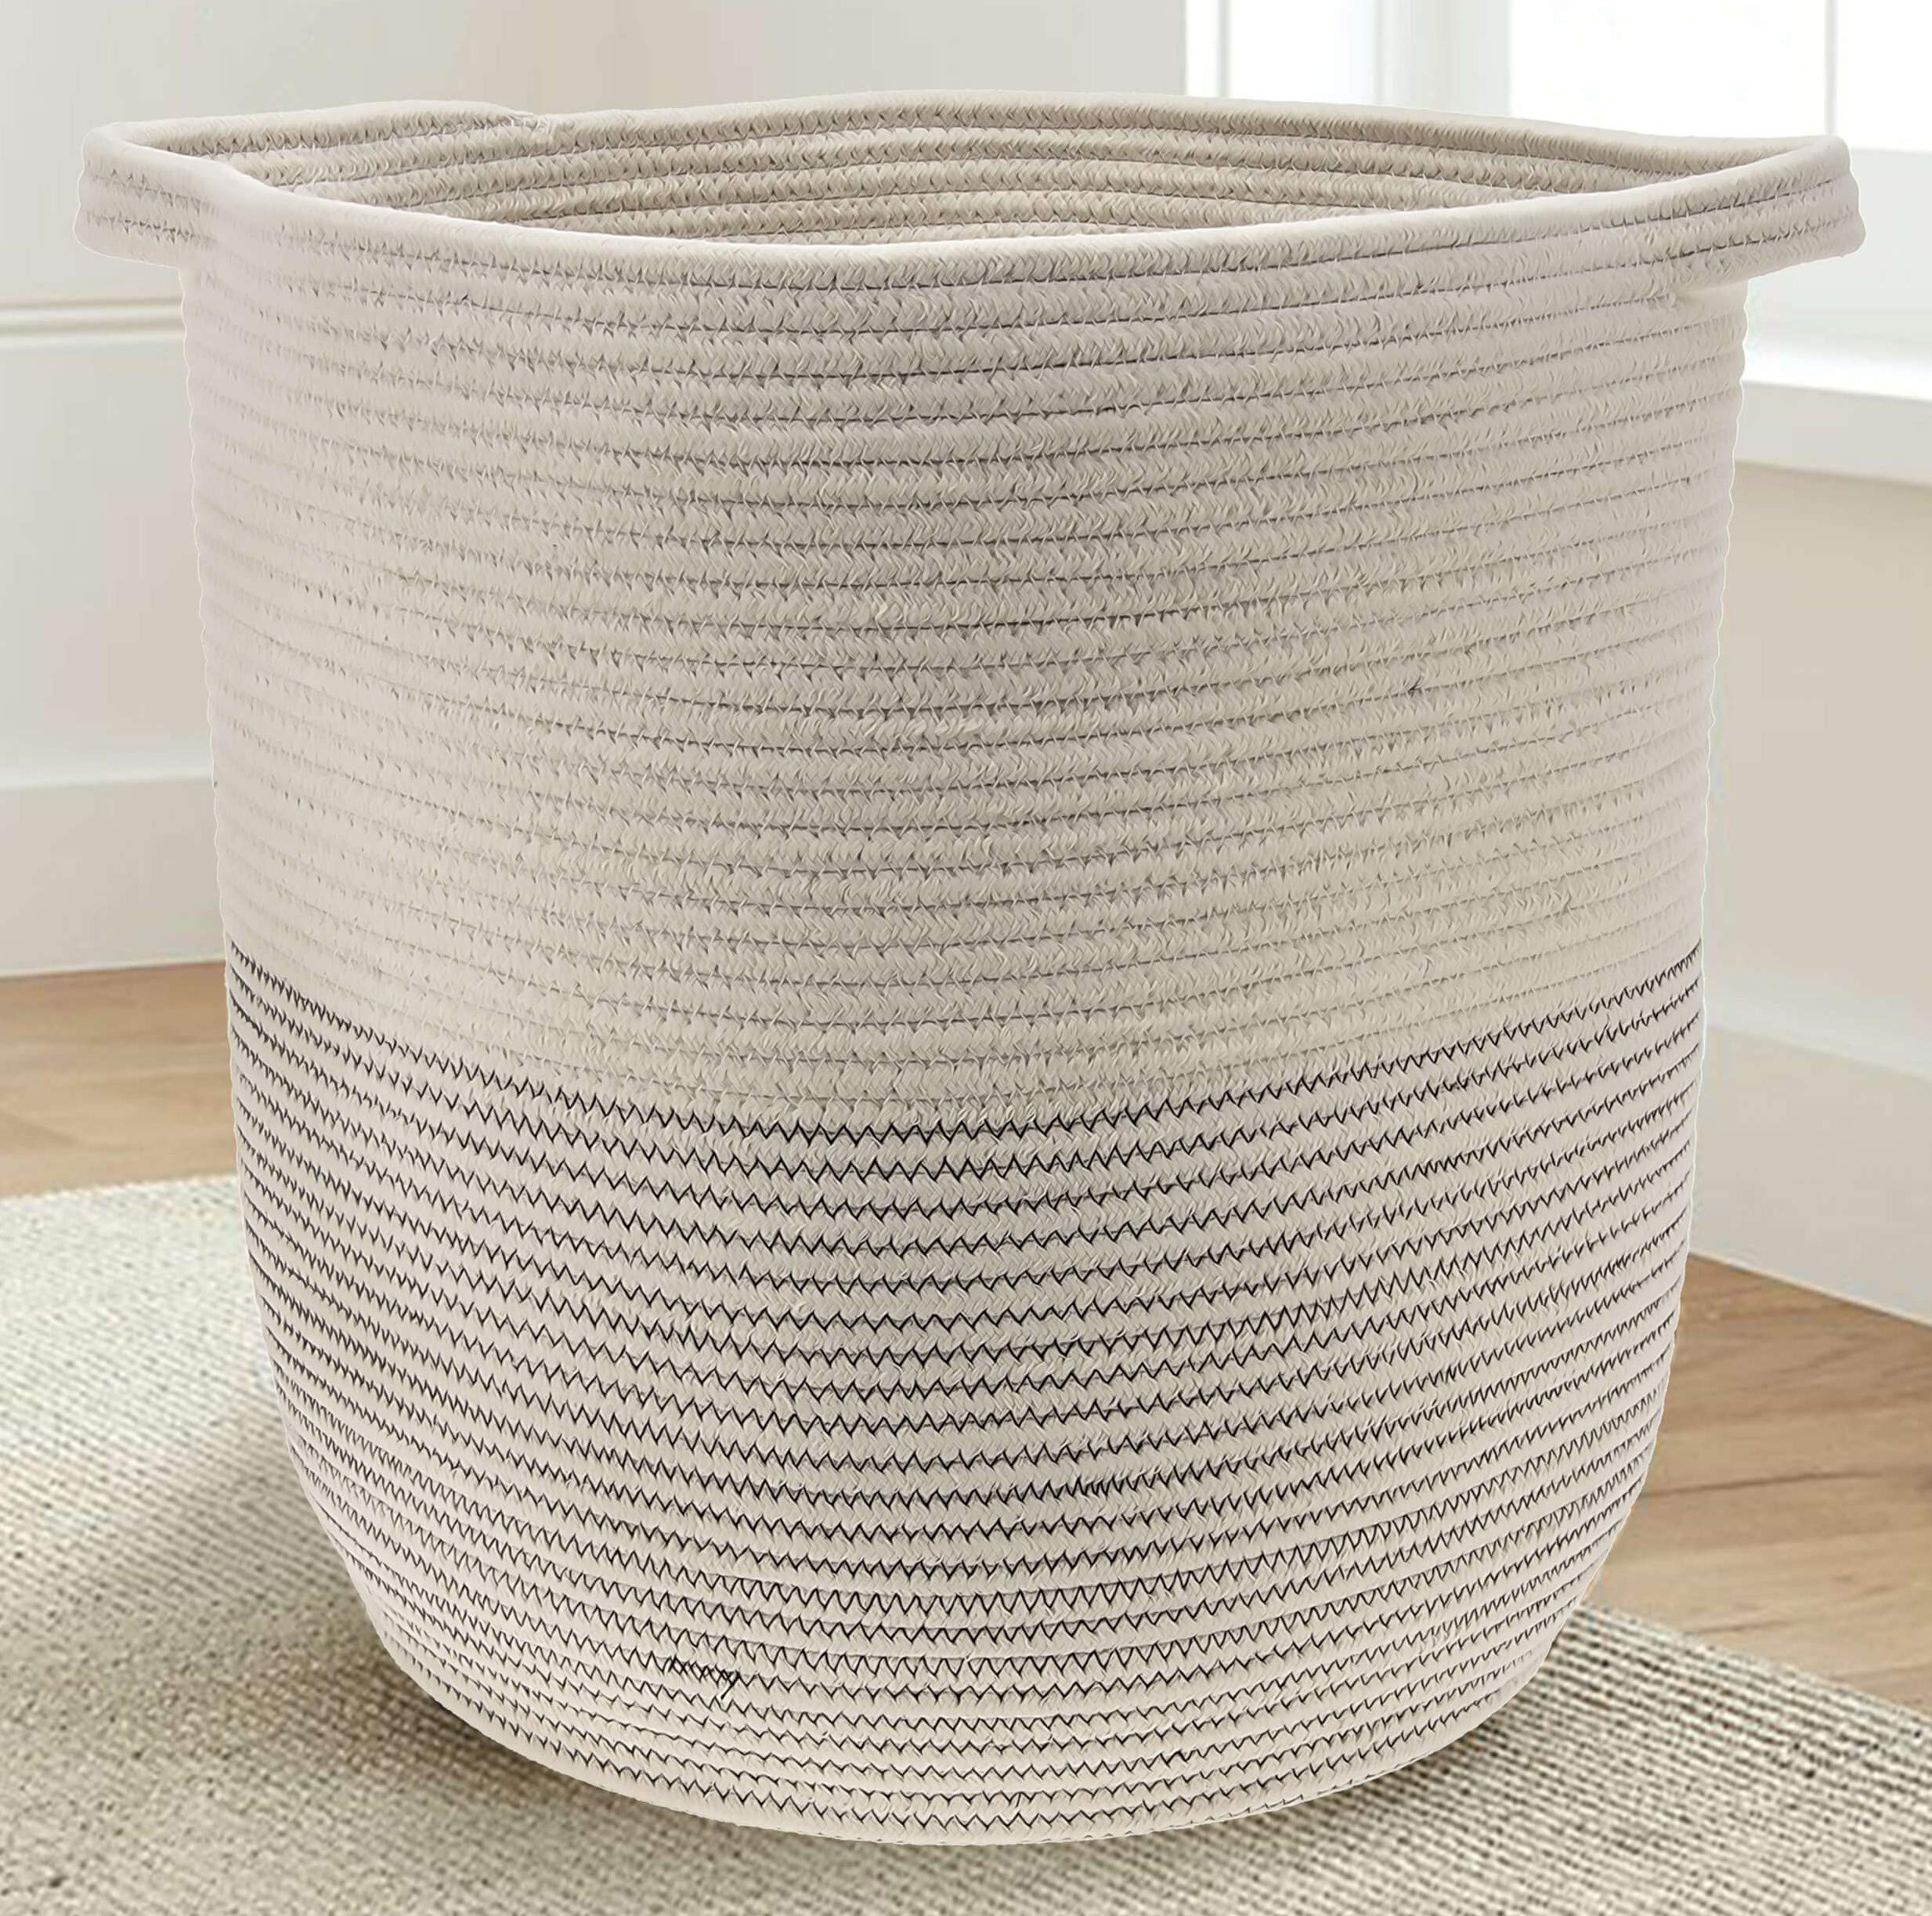 22x14 Perfect for Toys or Blankets Extra Large Cotton Rope Basket Premium Quality Blanket Storage /& Decorative Floor Basket Towels Home Decor Storage Baby Bin /& Laundry Hamper